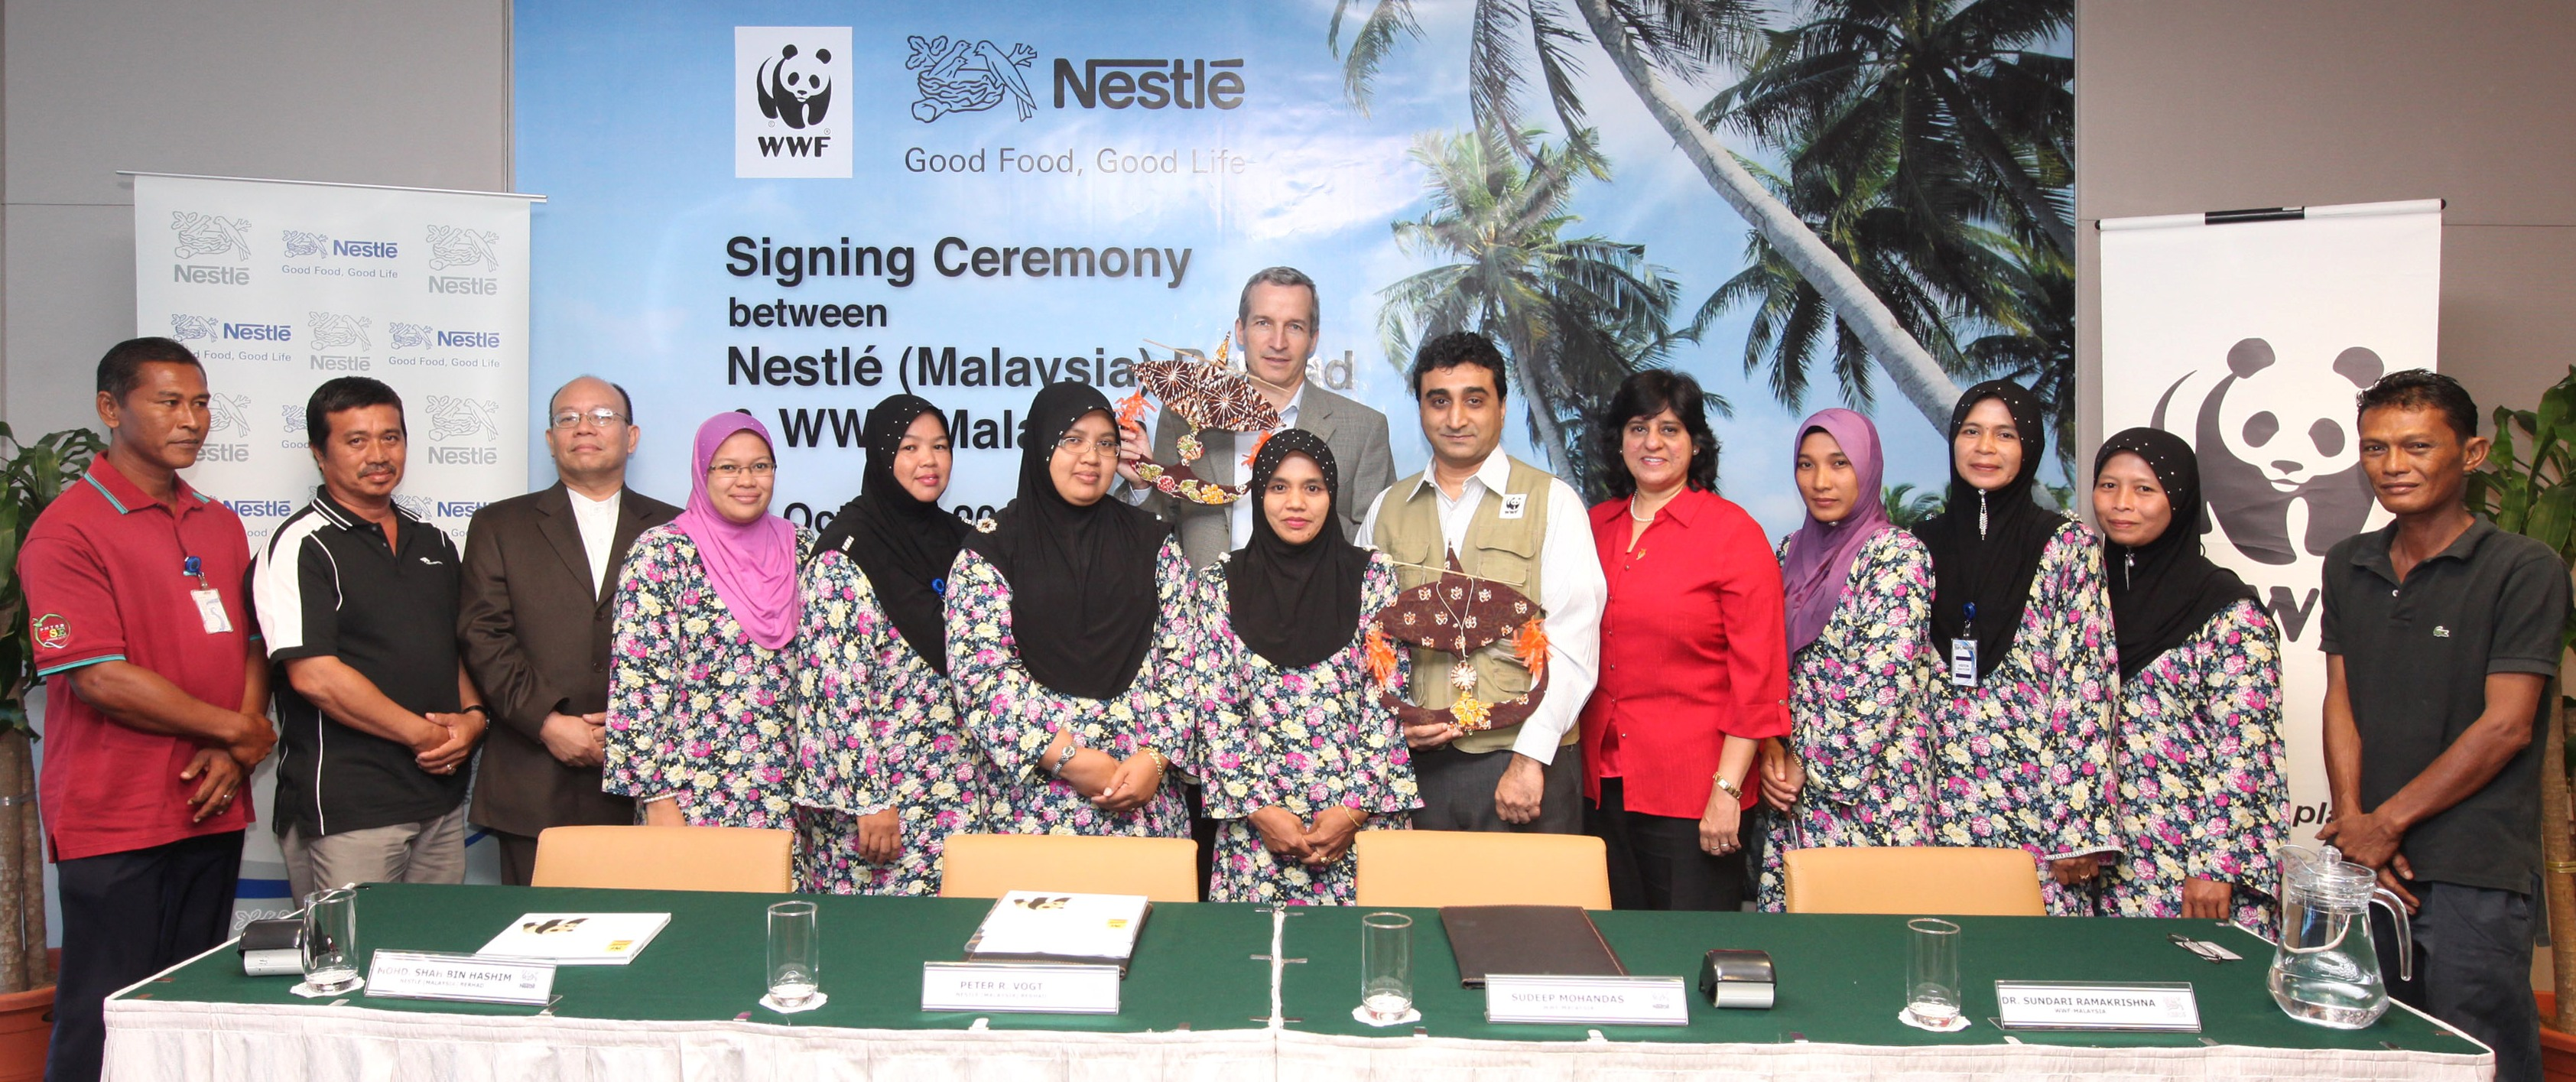 nestle malaysia berhad all is well The existing company that has selected is nestlé (malaysia) berhad nestlé's strengths such as high financial capability, effective strategic marketing capability, strong research and development, as well as great leaderships have helped them through the obstacles.